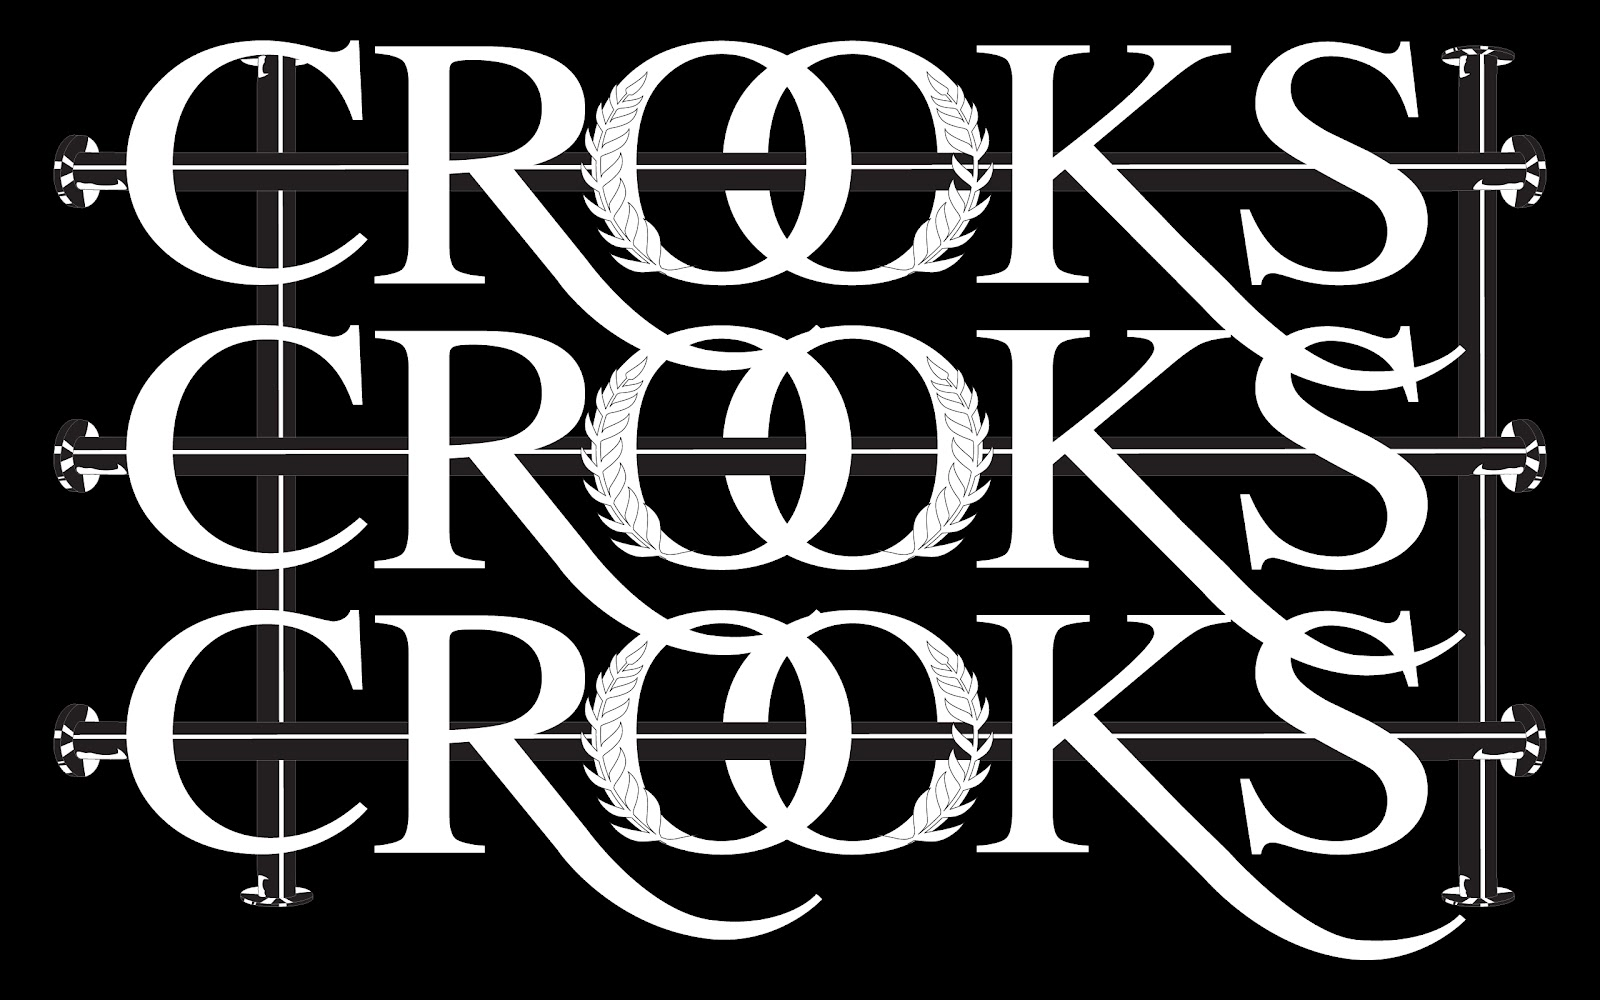 crooksandcastleswallpaperdownload 1jpg 1600x1000